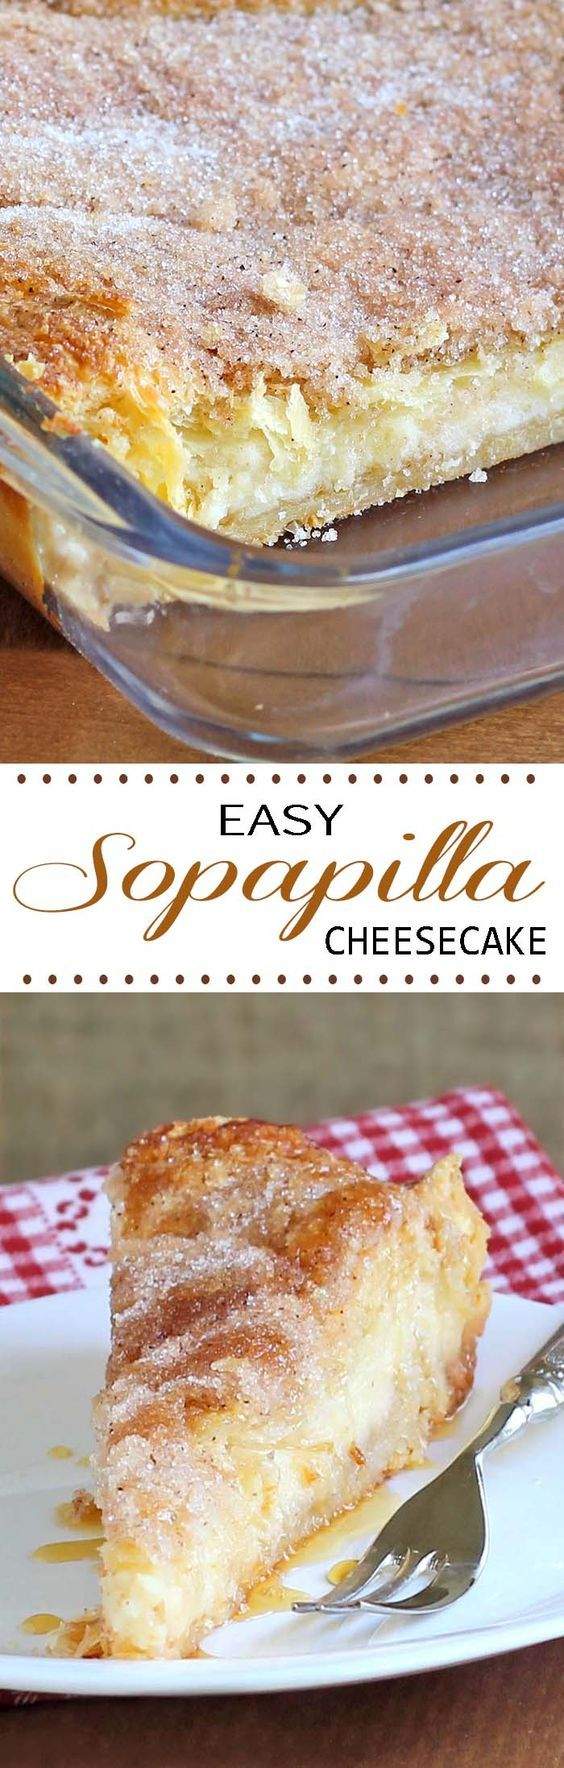 Sopapilla Cheesecake Dessert? Check. Easy? Check. So freakin' good they'll blow your mind? Check.: